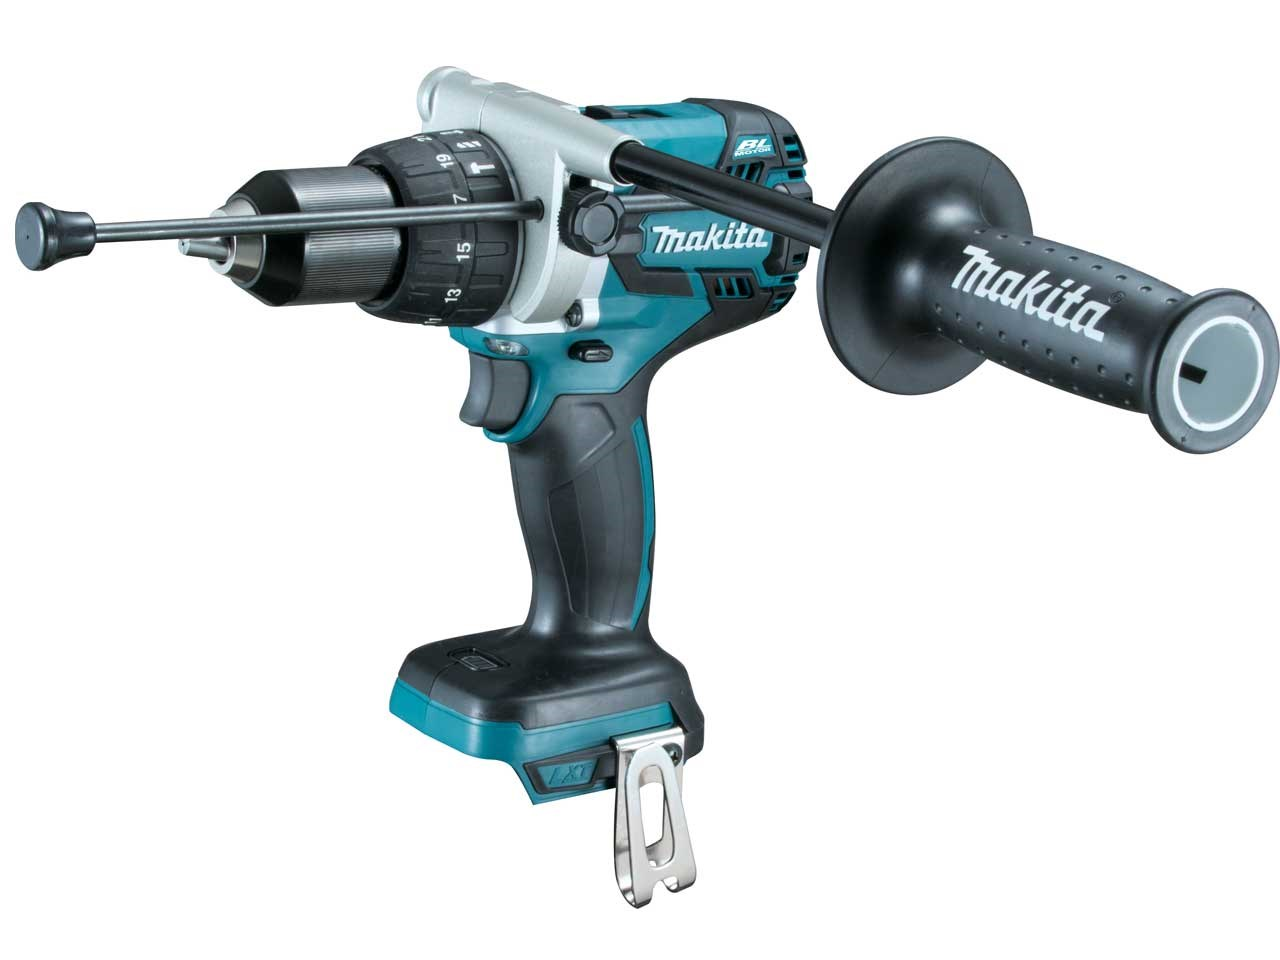 MAKITA 18V BRUSHLESS HEAVY-DUTY COMBI DRILL LXT - DHP481 - BODY ONLY